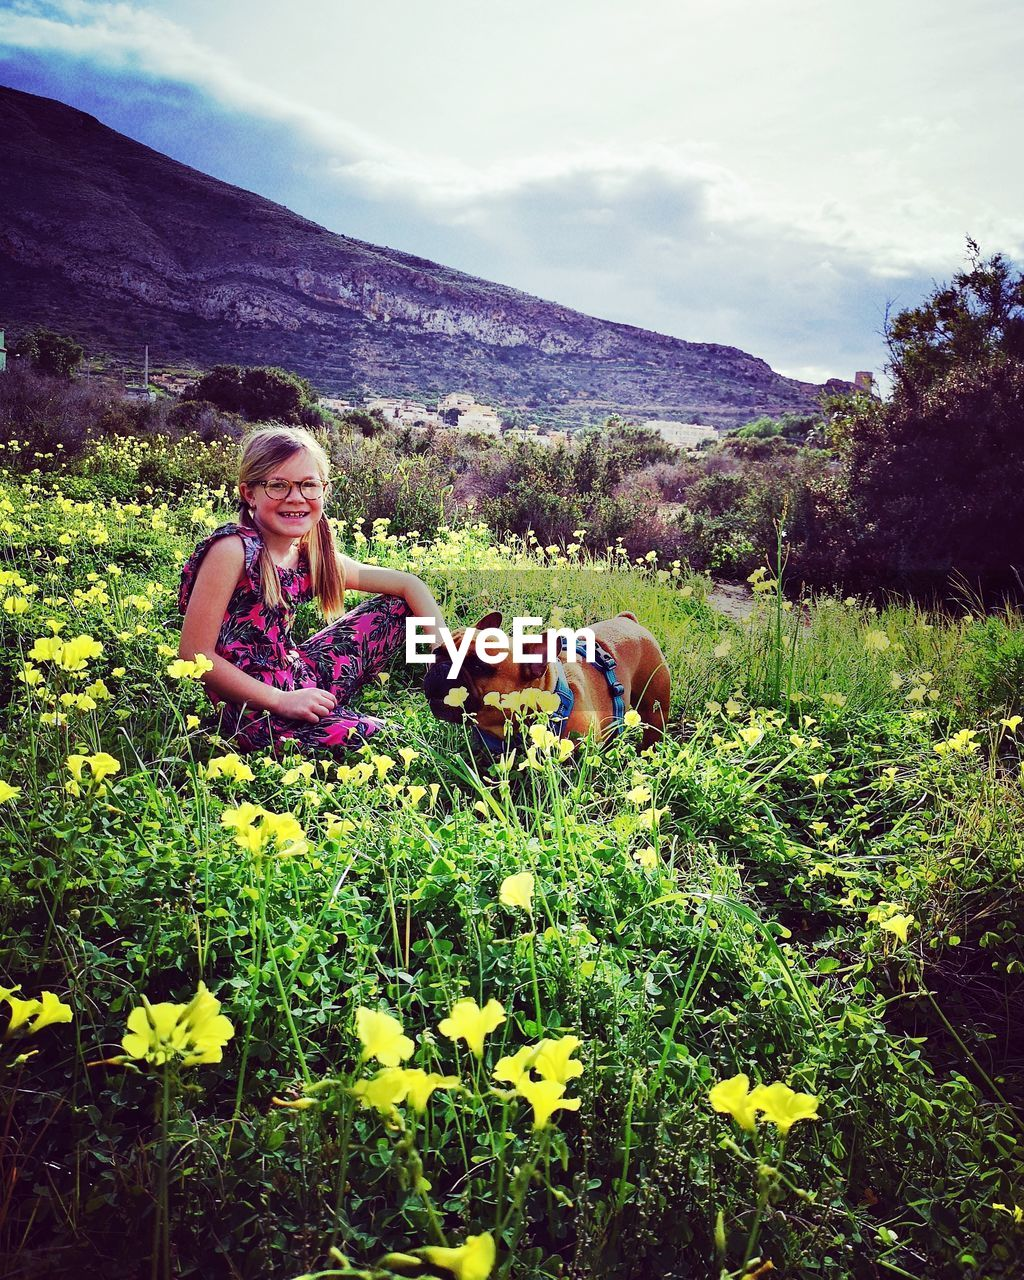 Portrait of girl smiling while sitting with dog amidst yellow flowers on mountain